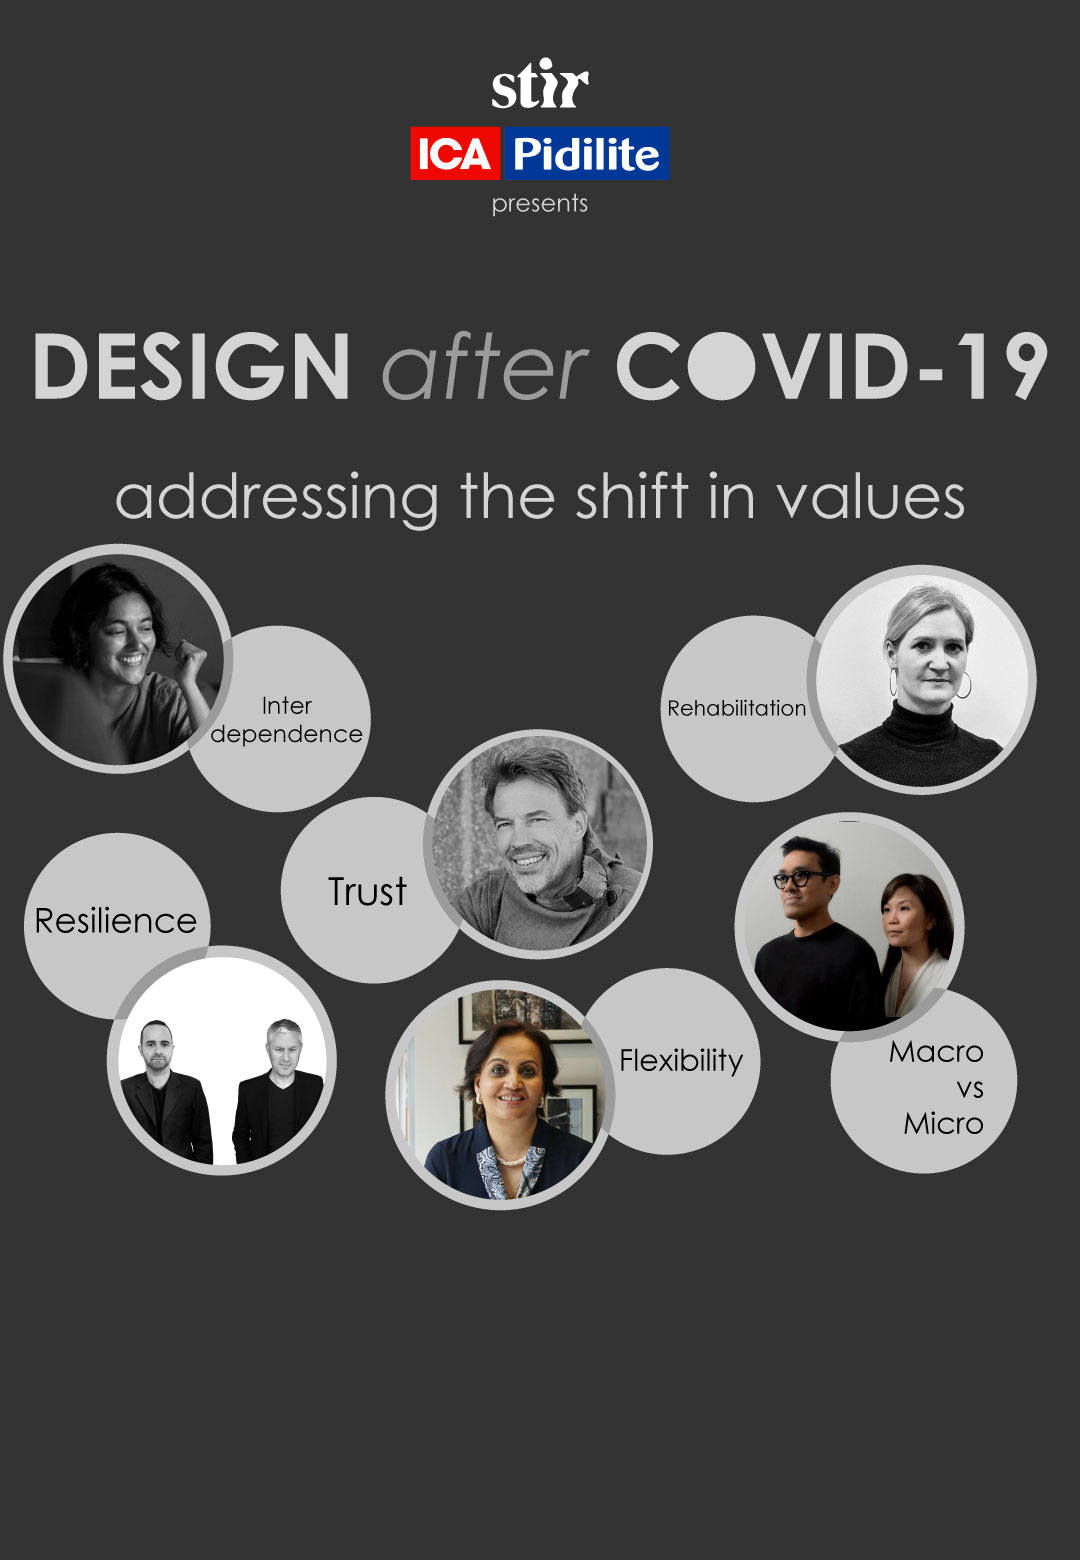 Architects and designers dwell on what to expect after the coronavirus pandemic for the Design After COVID-19 series | Design After COVID| STIRworld